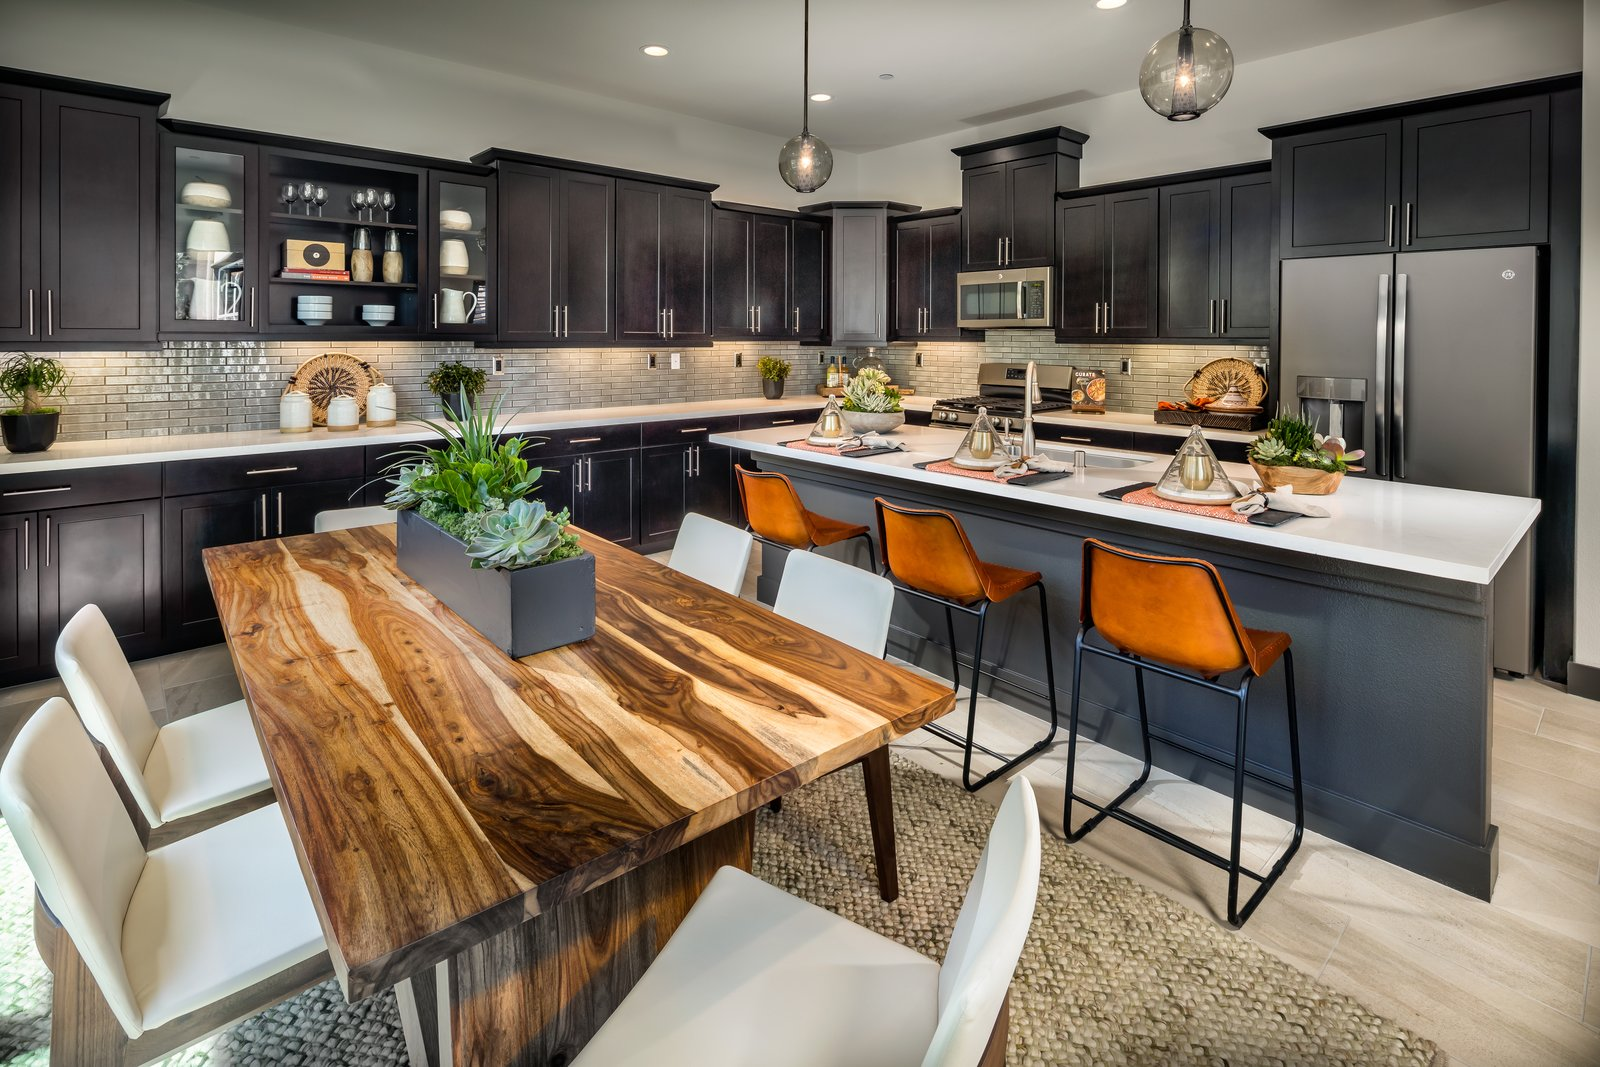 large kitchen with natural wood dining table, island with leather barstools, dark espresso shaker cabinets, stainless steel appliances and led cabinet lighting